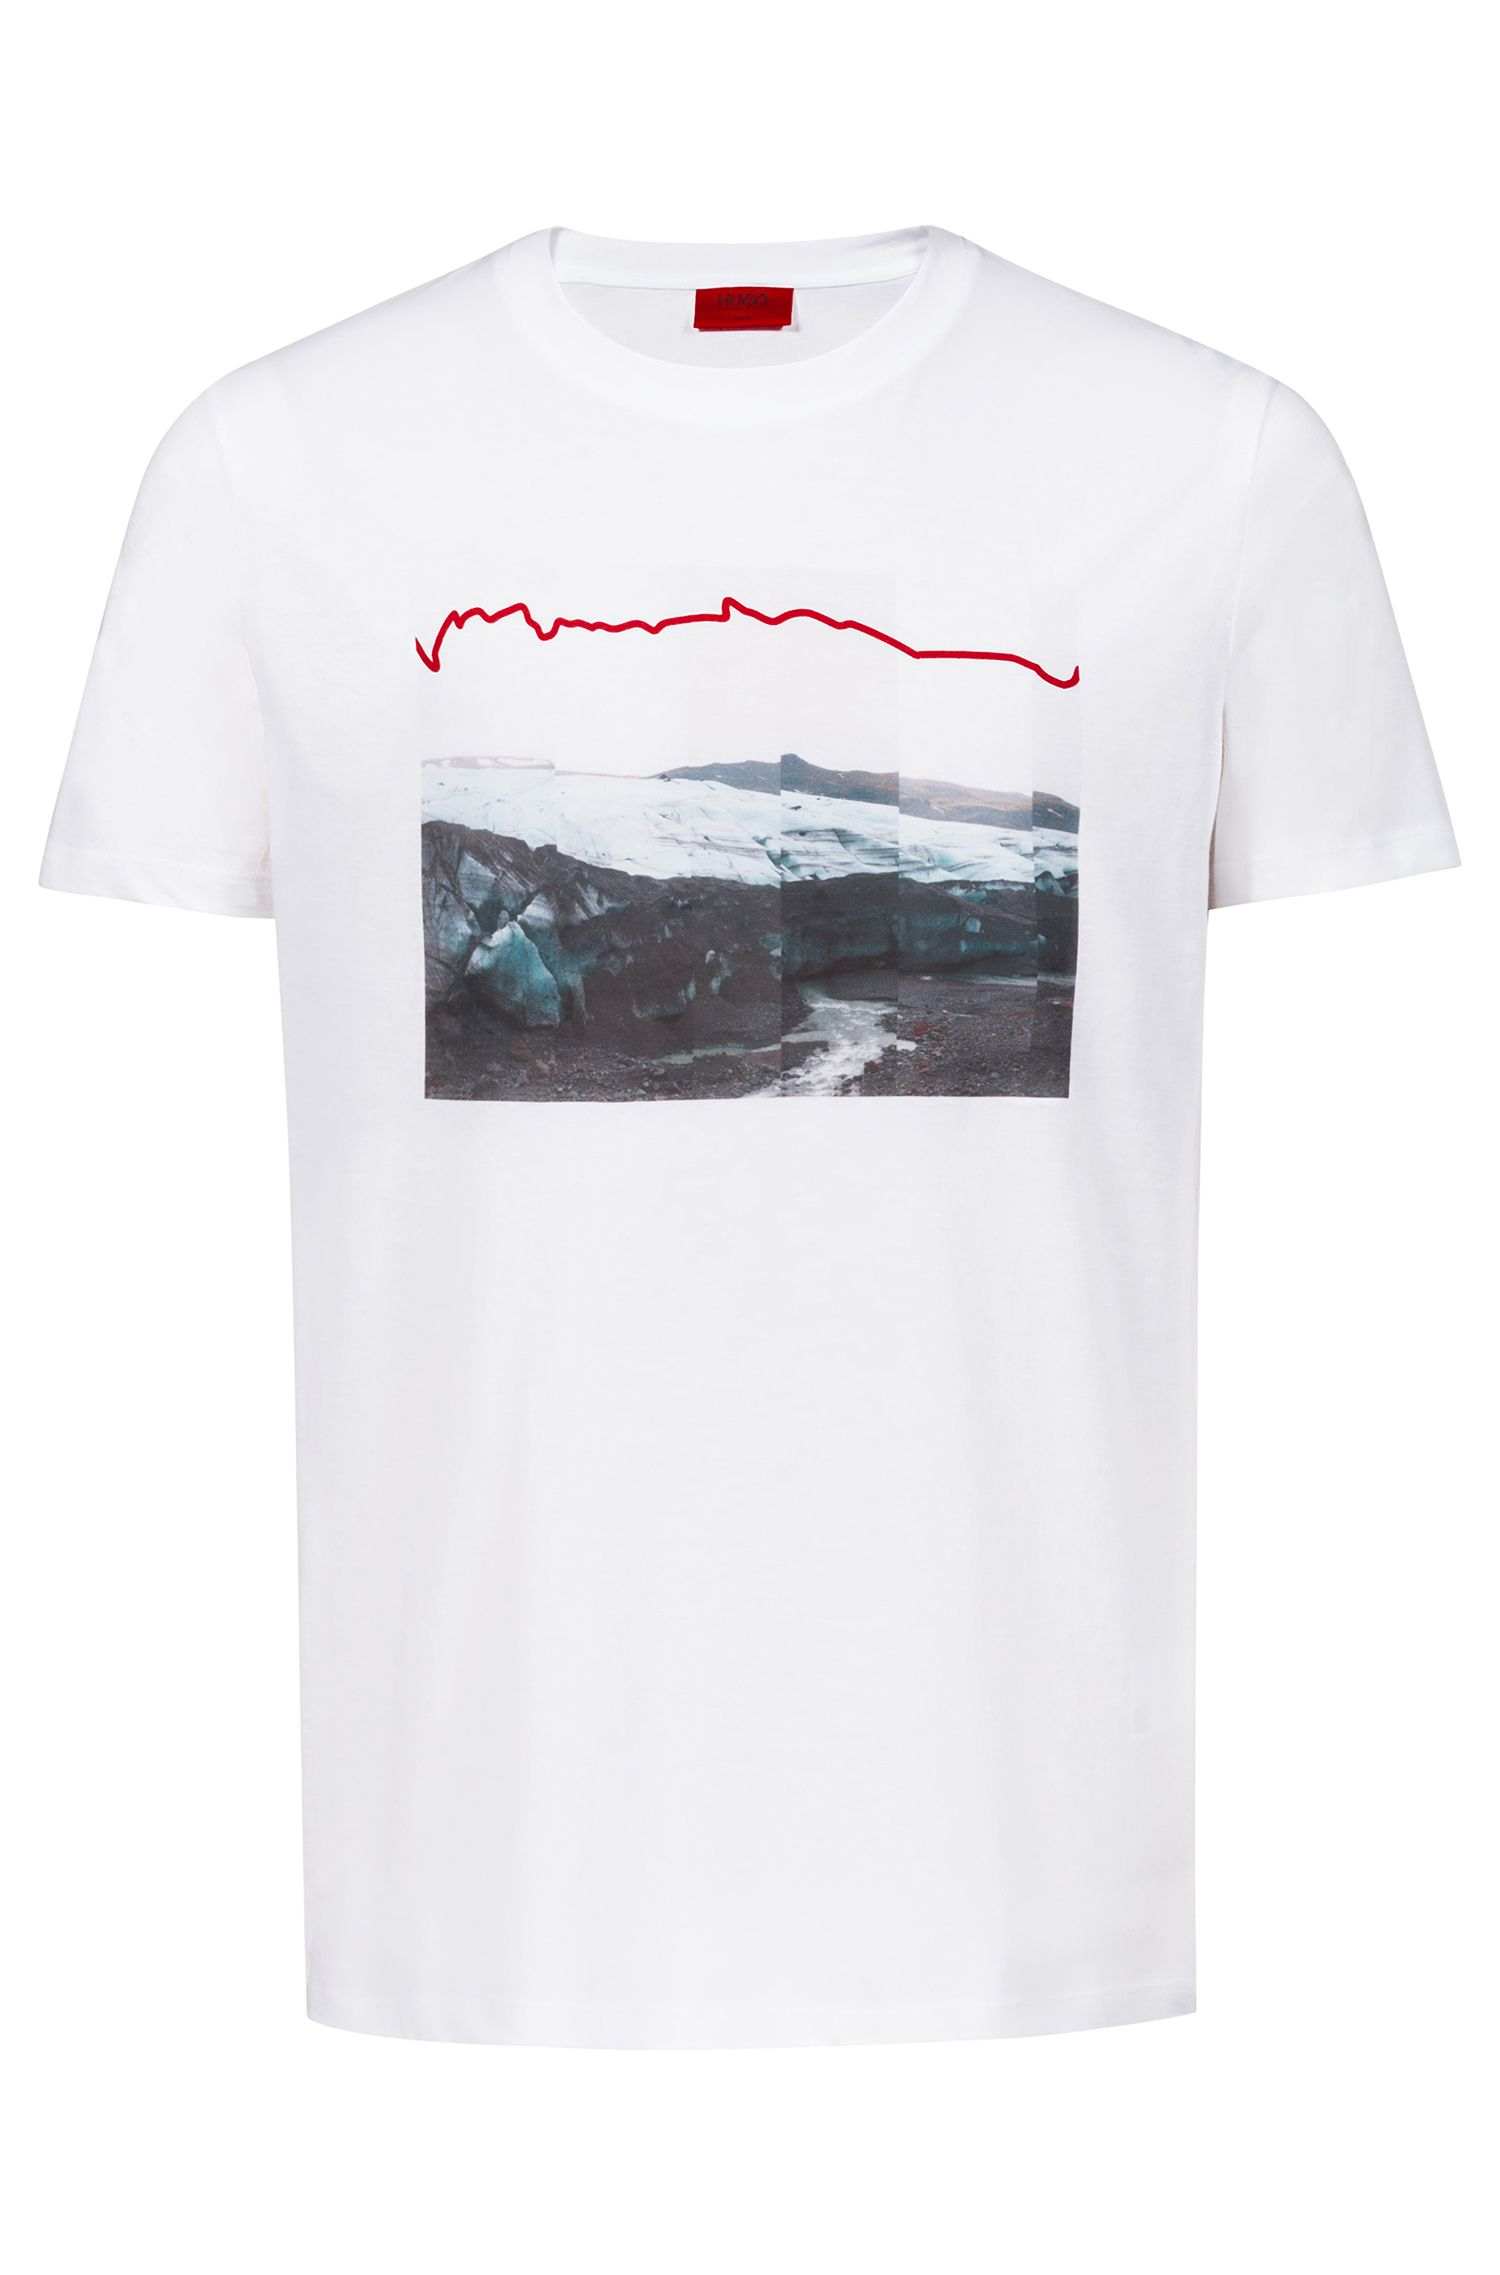 Unisex T-shirt in cotton with collection artwork, White